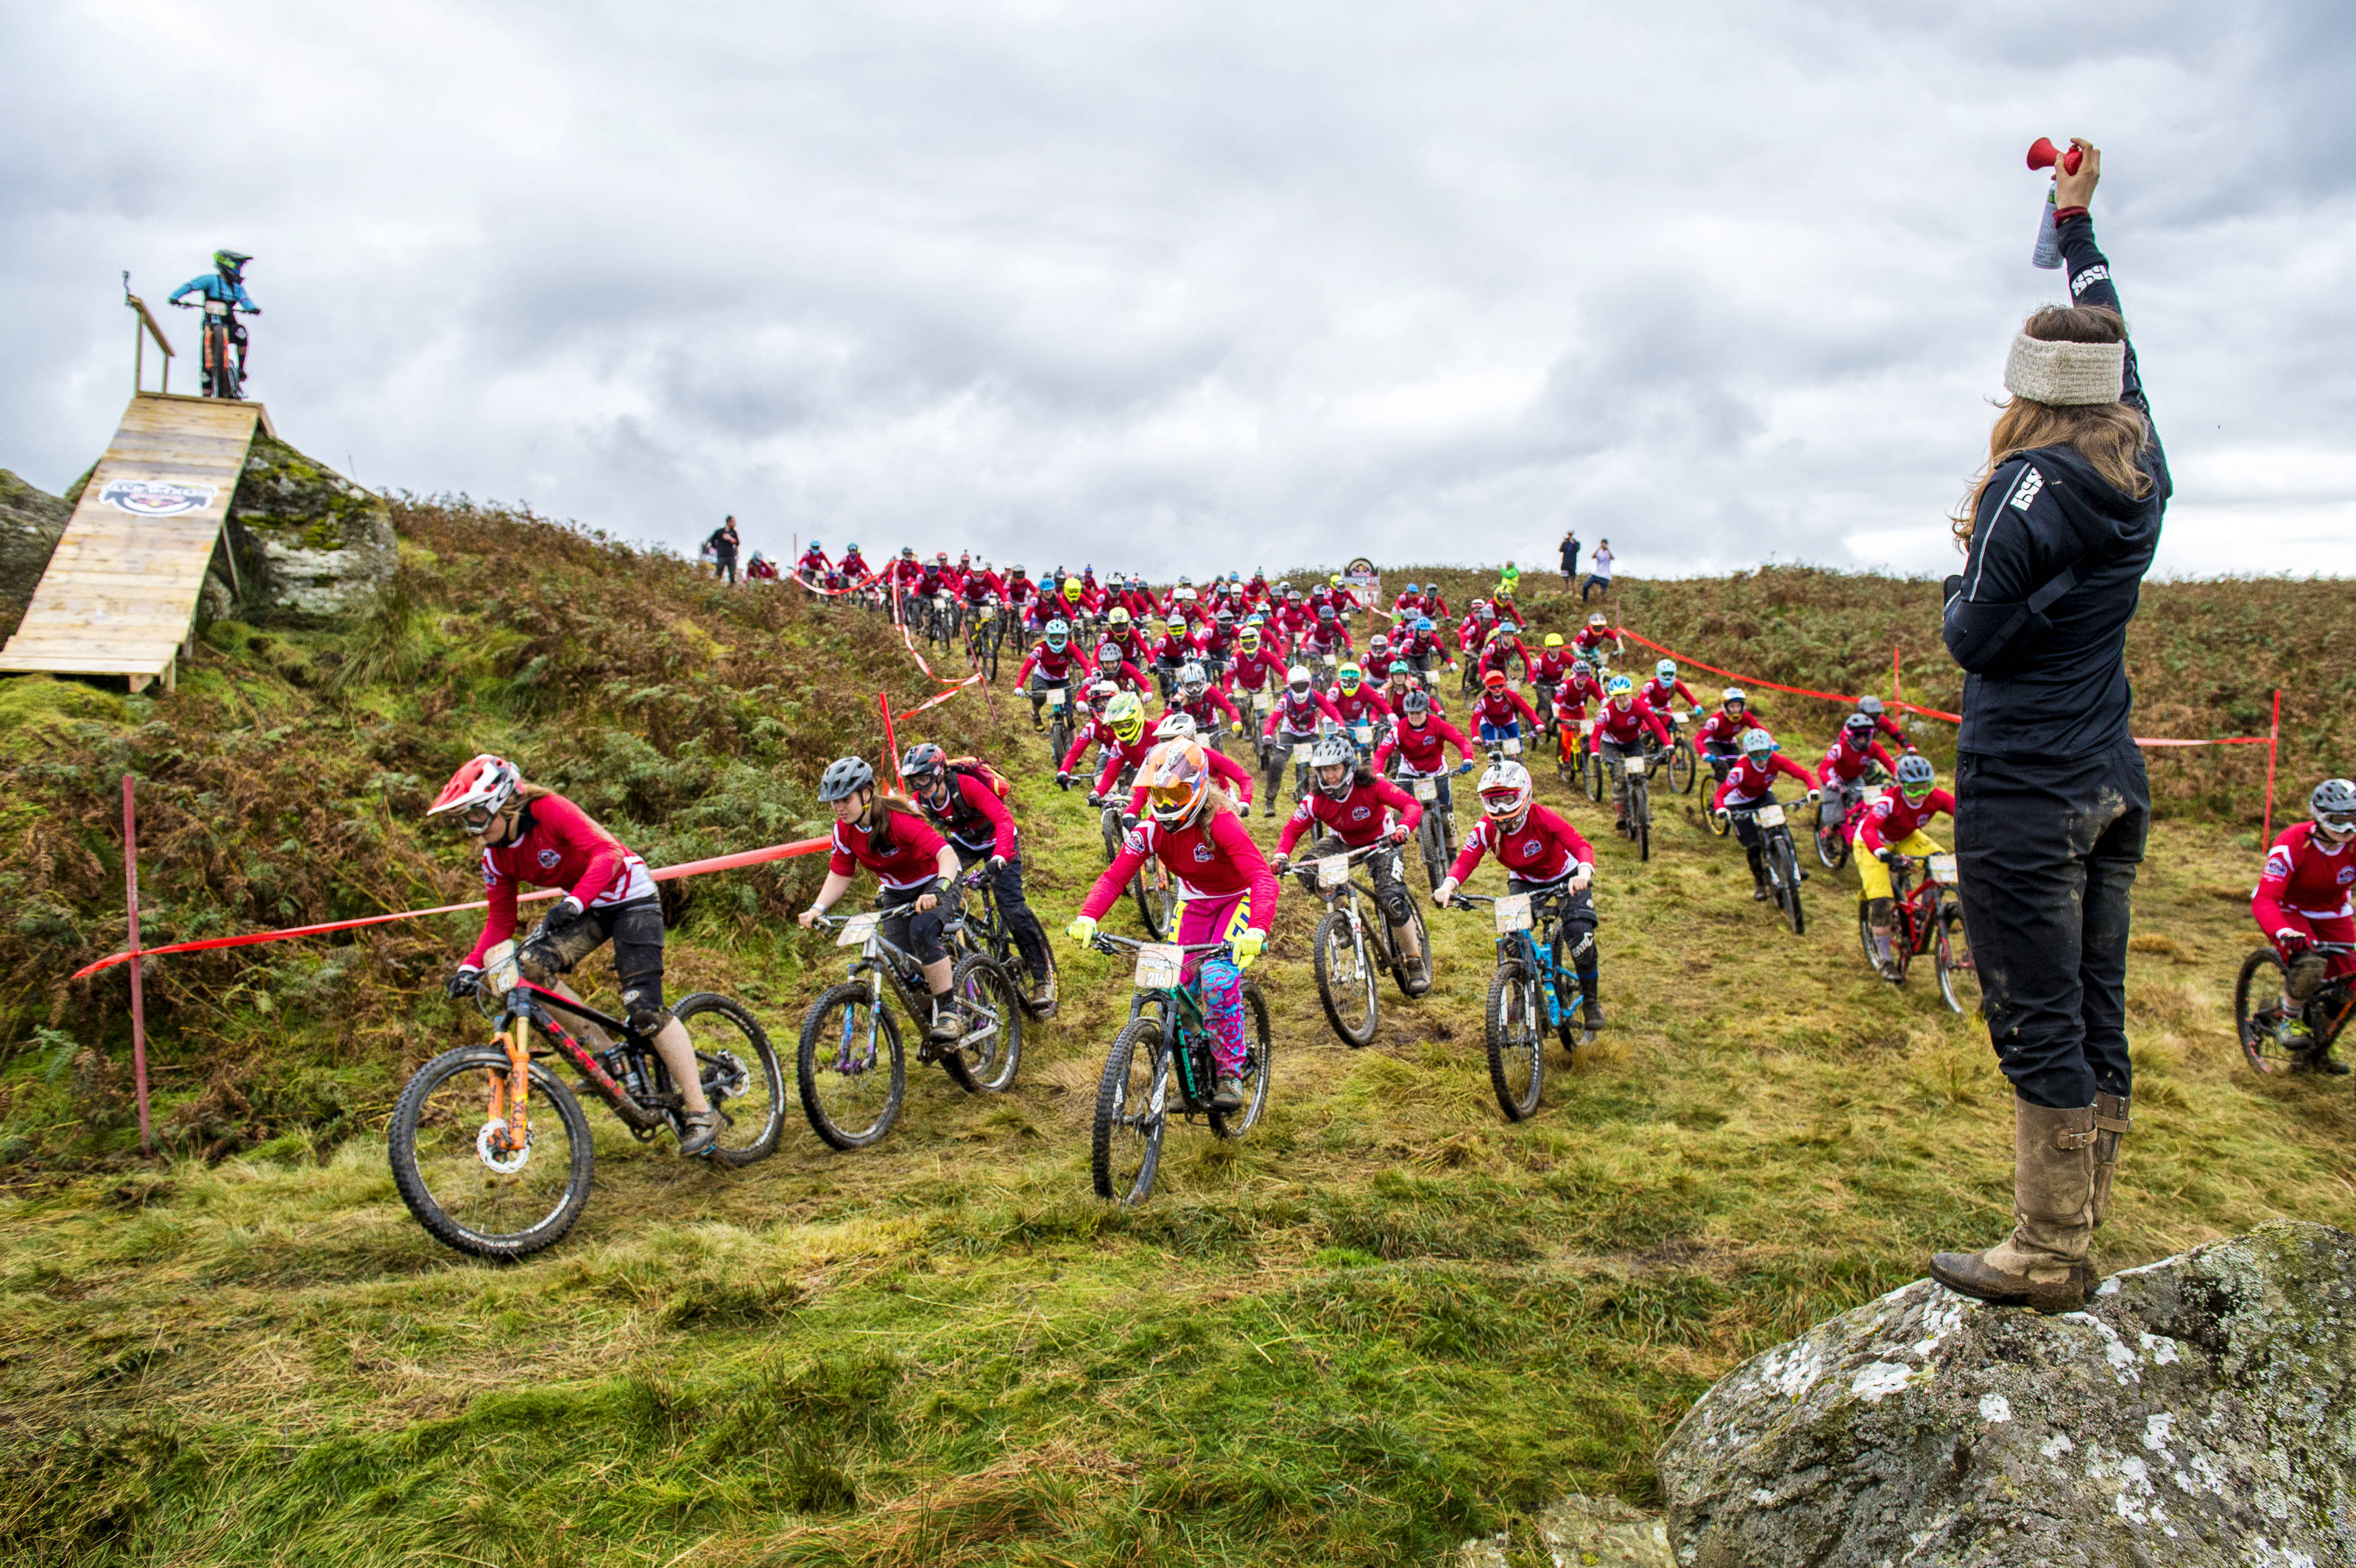 Lots of mountain bikers competing at the Red Bull Fox Hunt